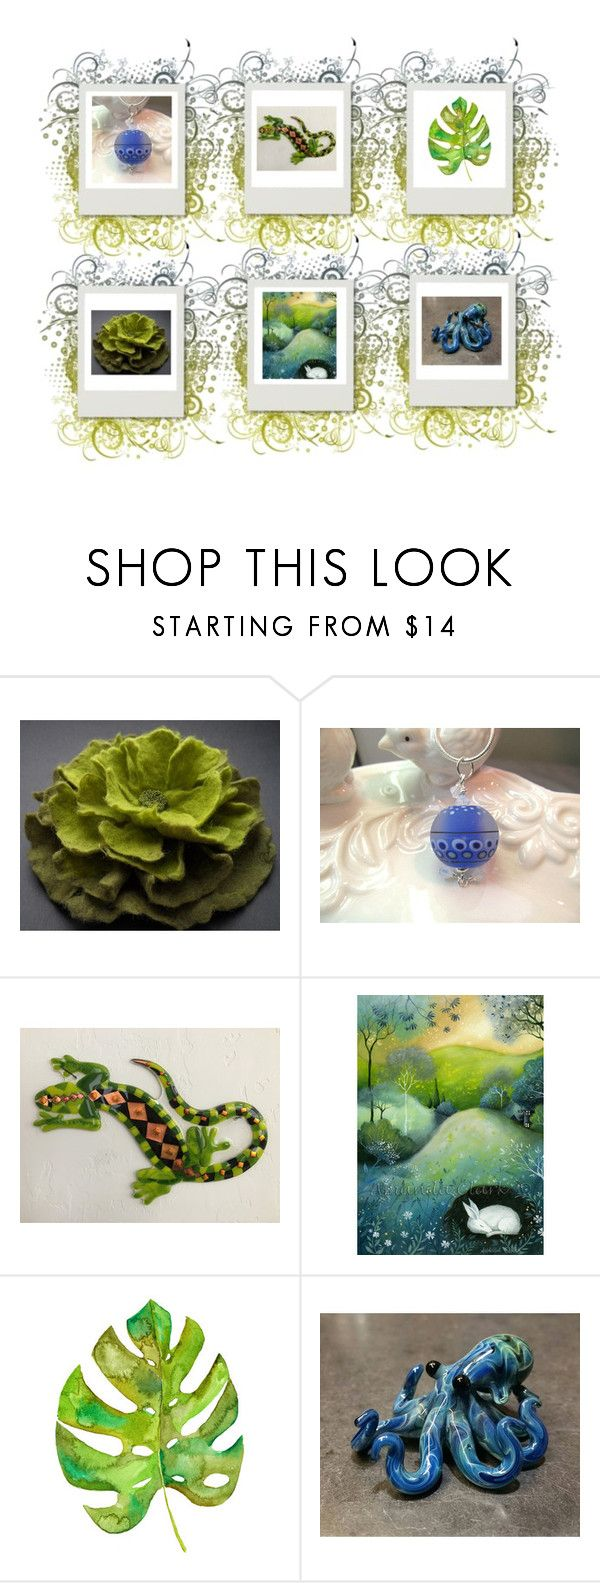 """Lovely Gifts"" by keepsakedesignbycmm ❤ liked on Polyvore featuring jewelry, decor and acessories"